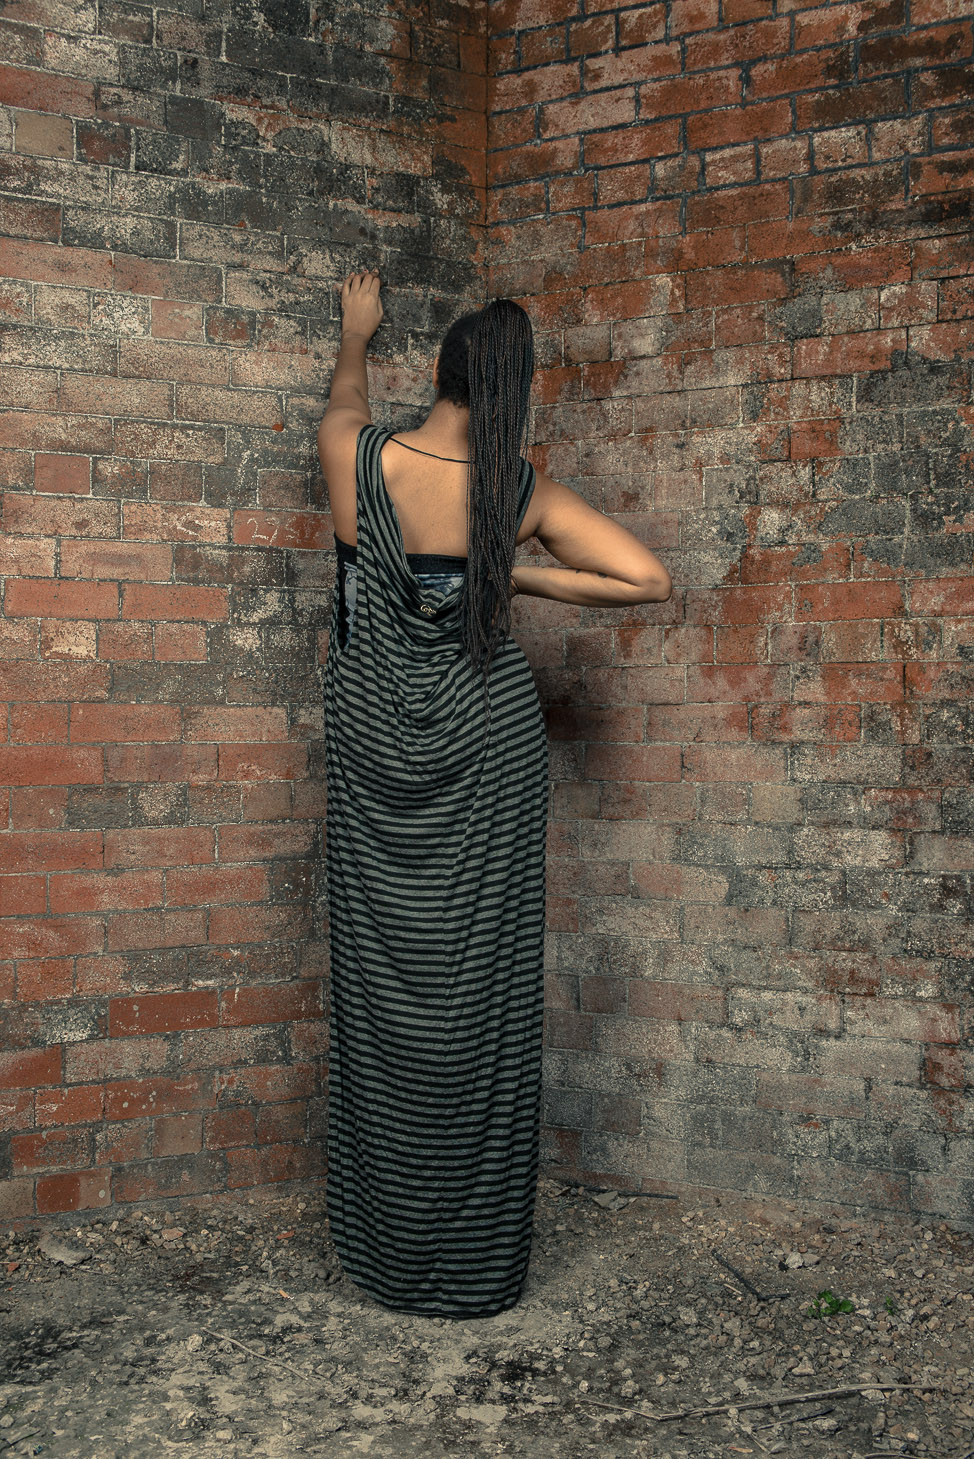 zaramia-ava-zaramiaava-leeds-fashion-designer-ethical-sustainable-tailored-minimalist-stripe-bodysuit-versatile-drape-dress-top-black-grey-print-belt-wrap-cowl-styling-bodysuit-womenswear-models-14